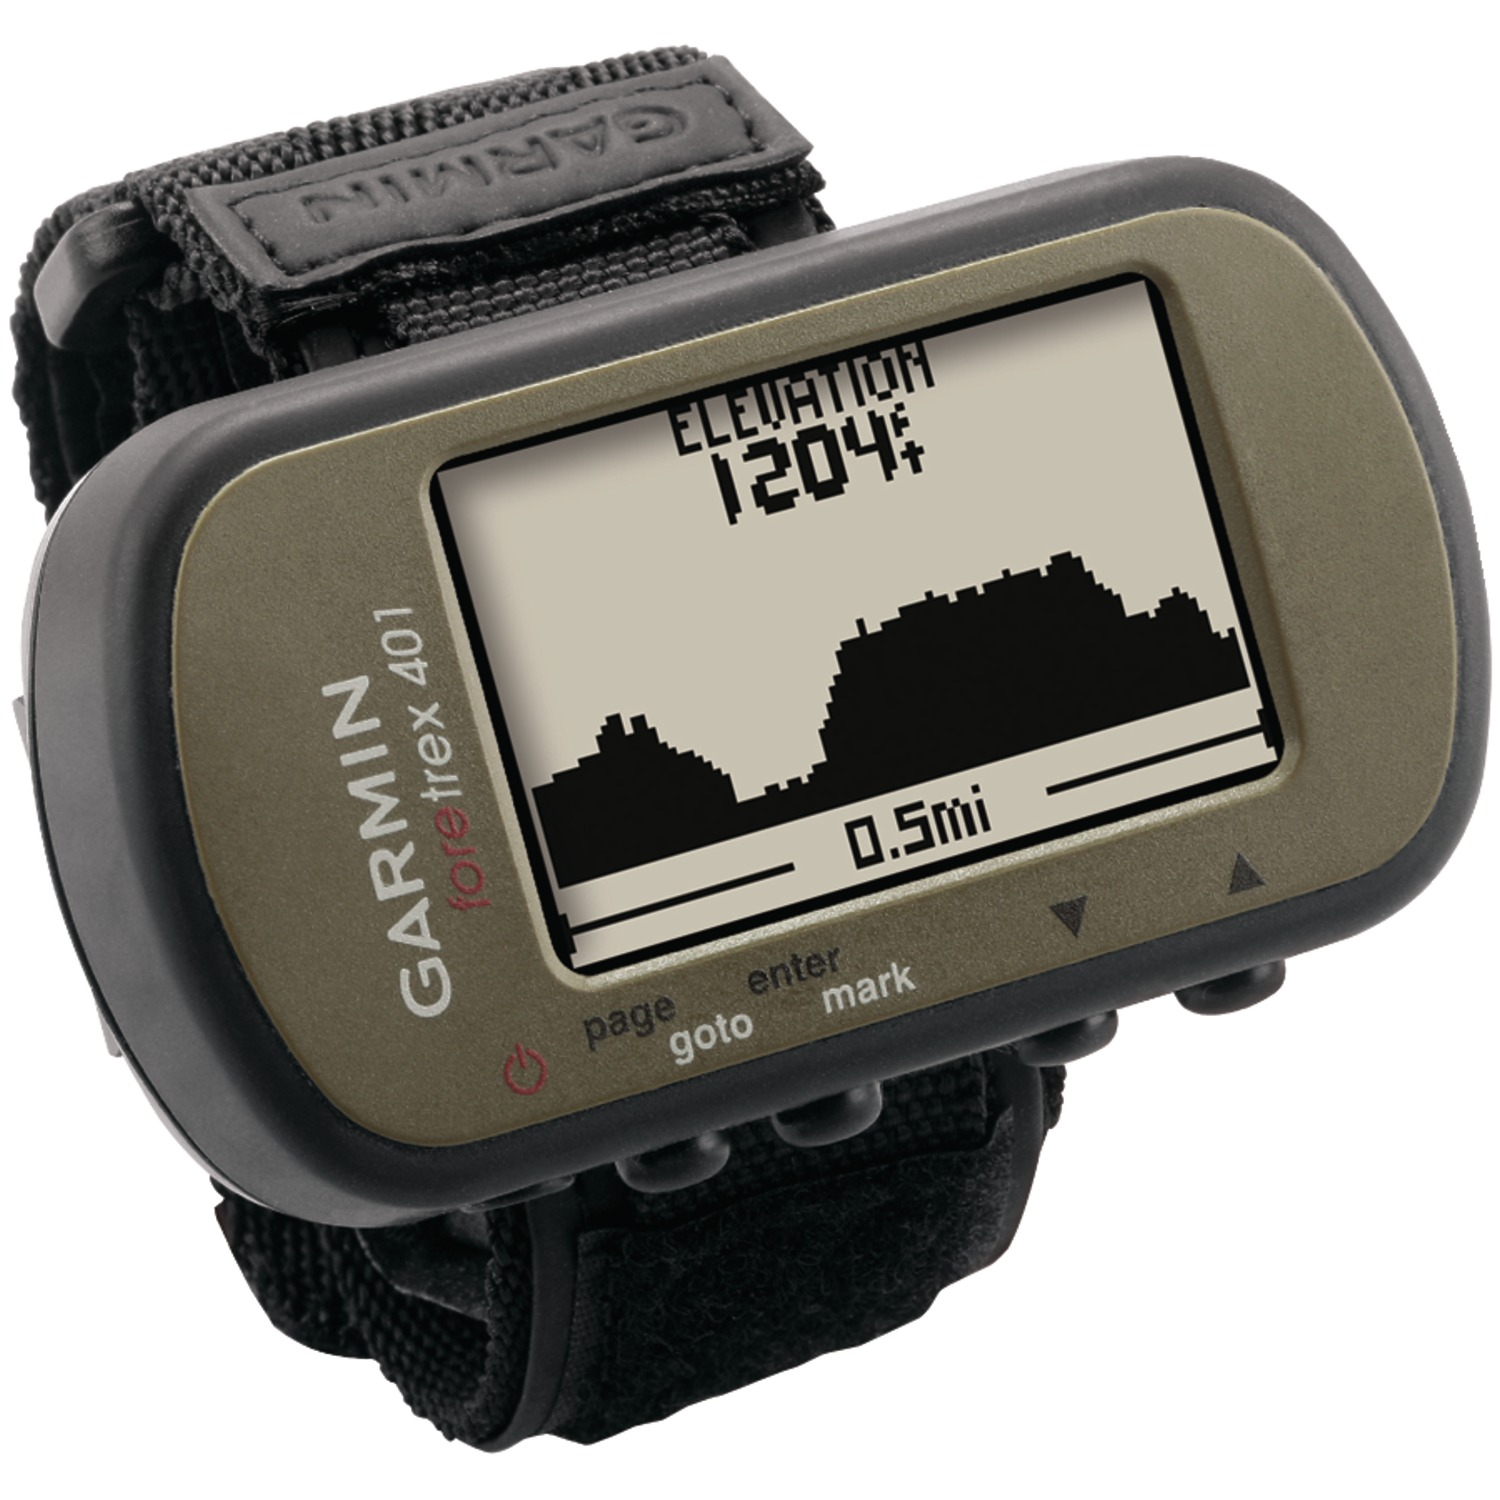 Image for Garmin Foretrex 401 - Gps Watch from Circuit City